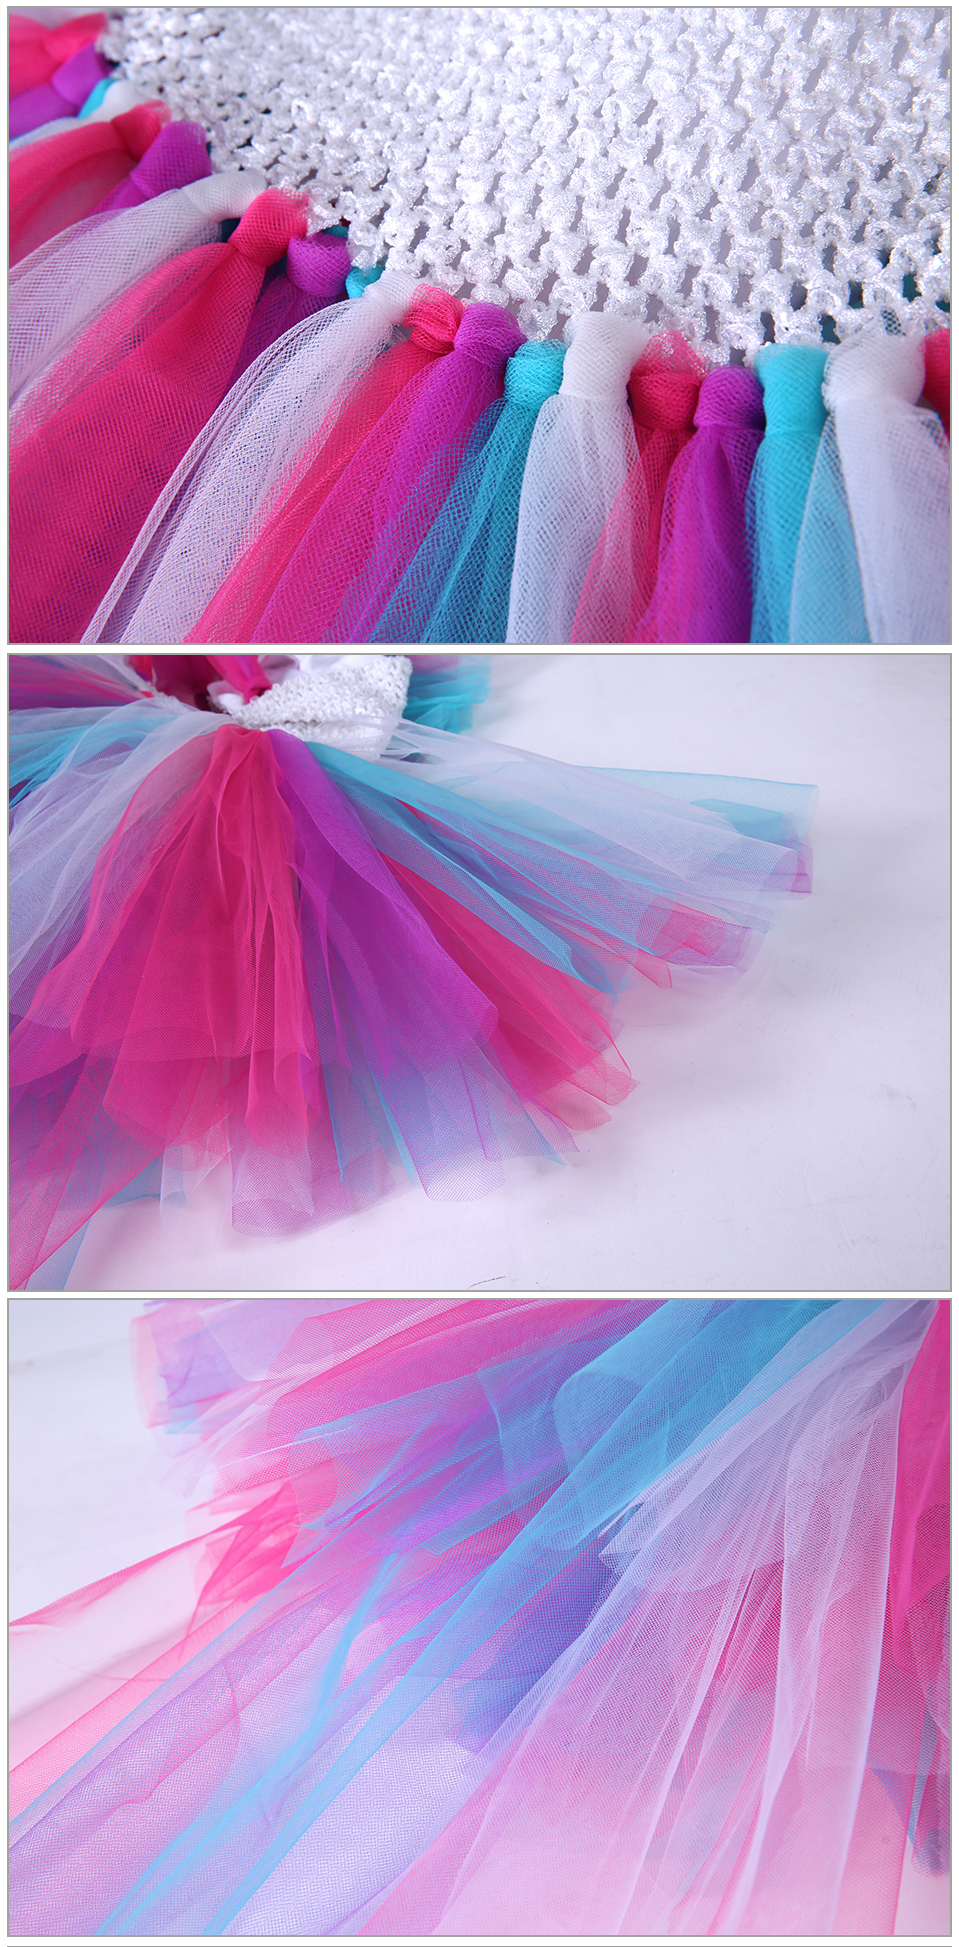 Little Pony Unicorn Girls Tutu Dress Bustle Rainbow Birthday Baby Party Costume Halloween Purim Dresses For Kids